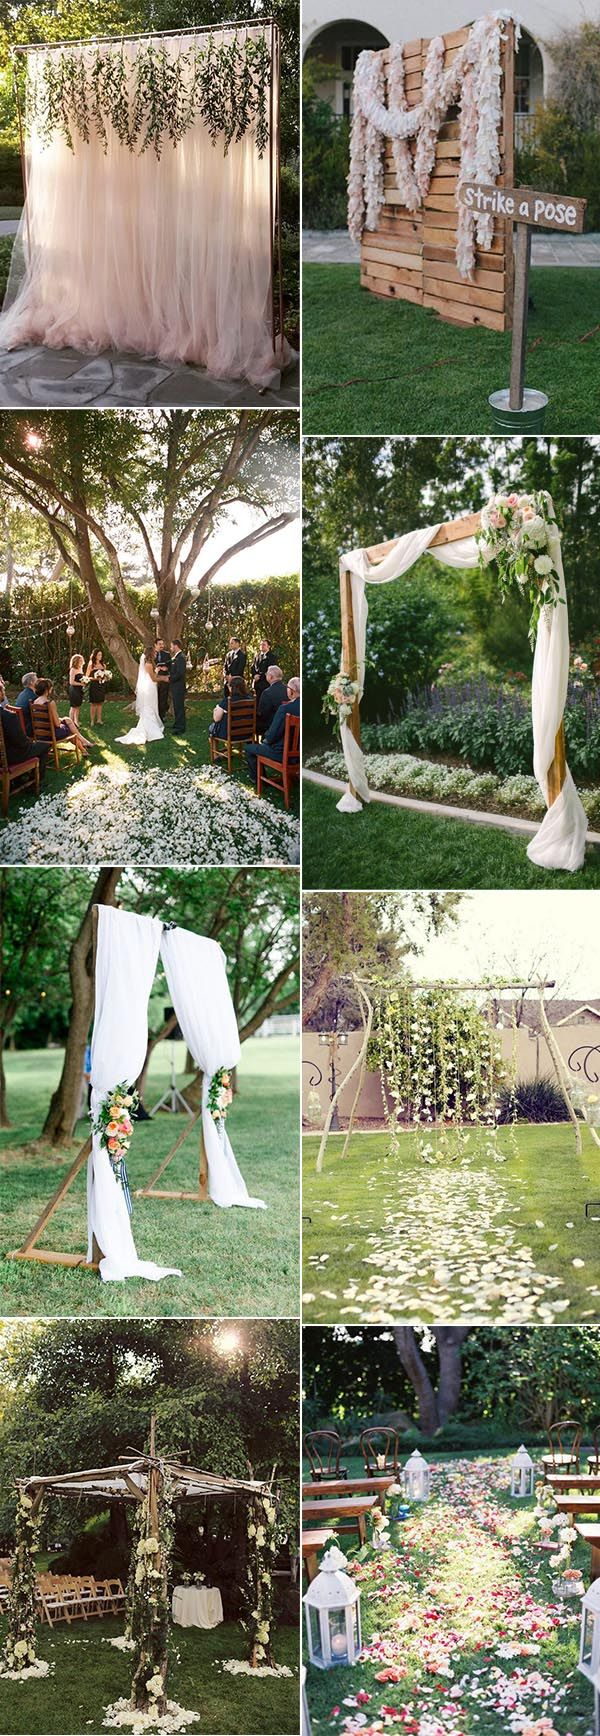 134 best wedding ideas images on pinterest marriage